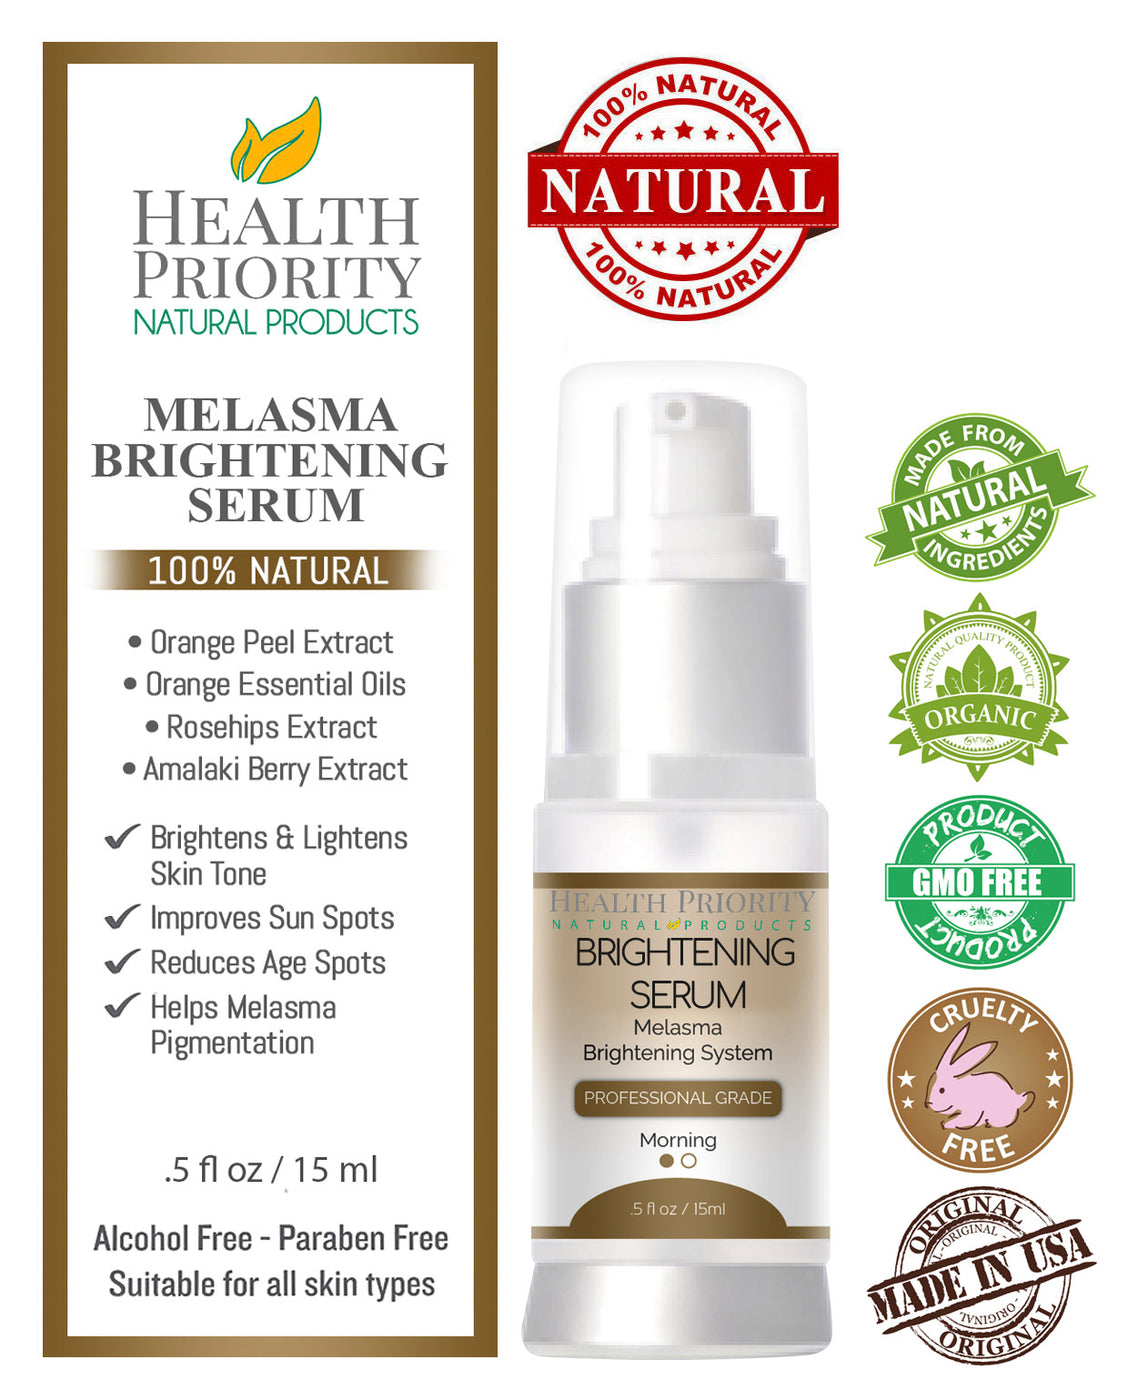 100% Natural & Organic Melasma Brightening Serum